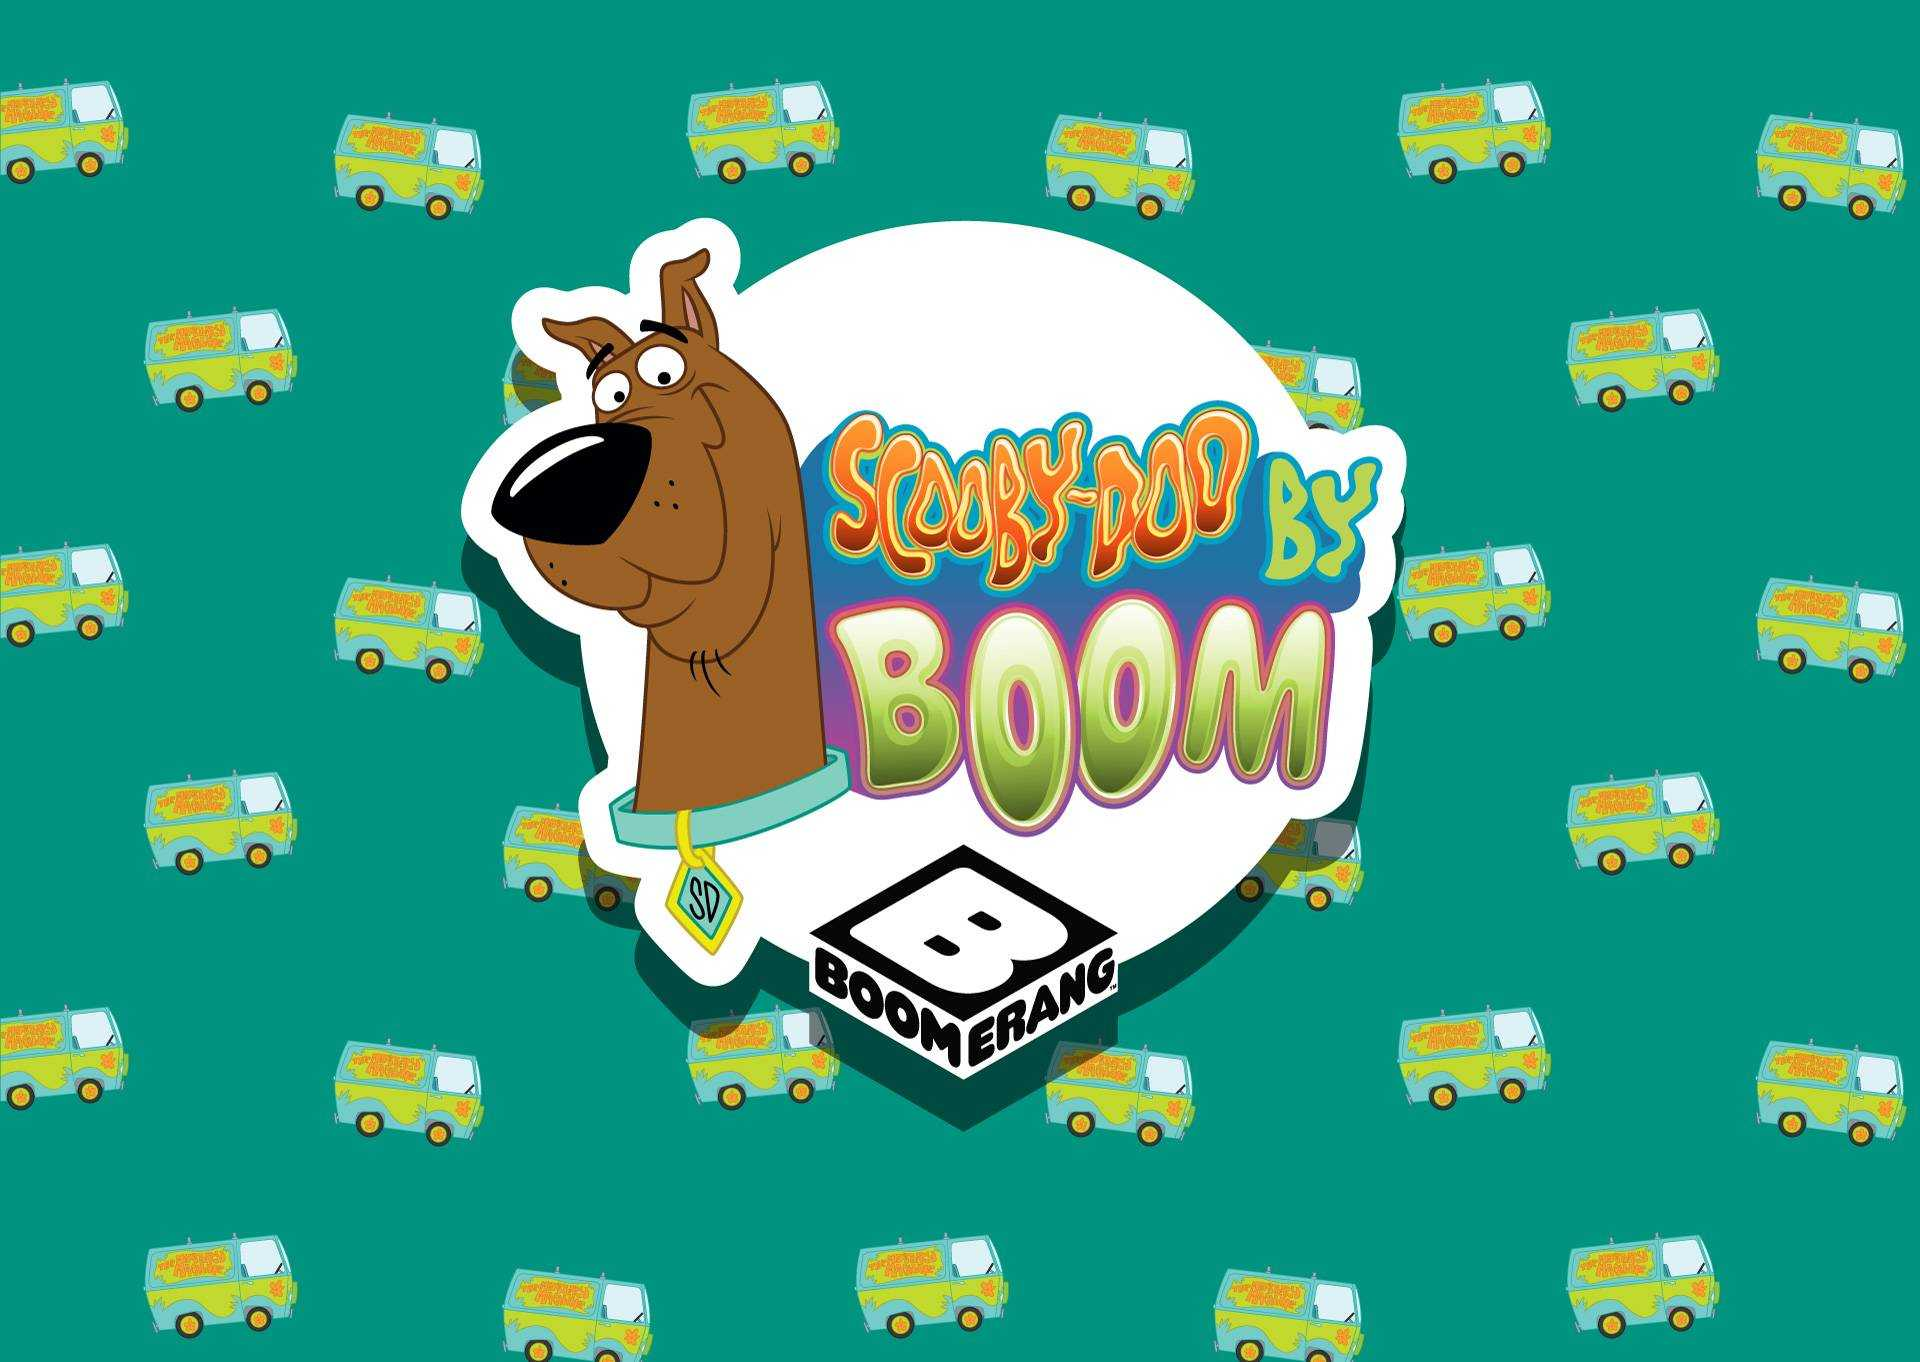 Arriva il pop up channel dedicato a Scooby Doo